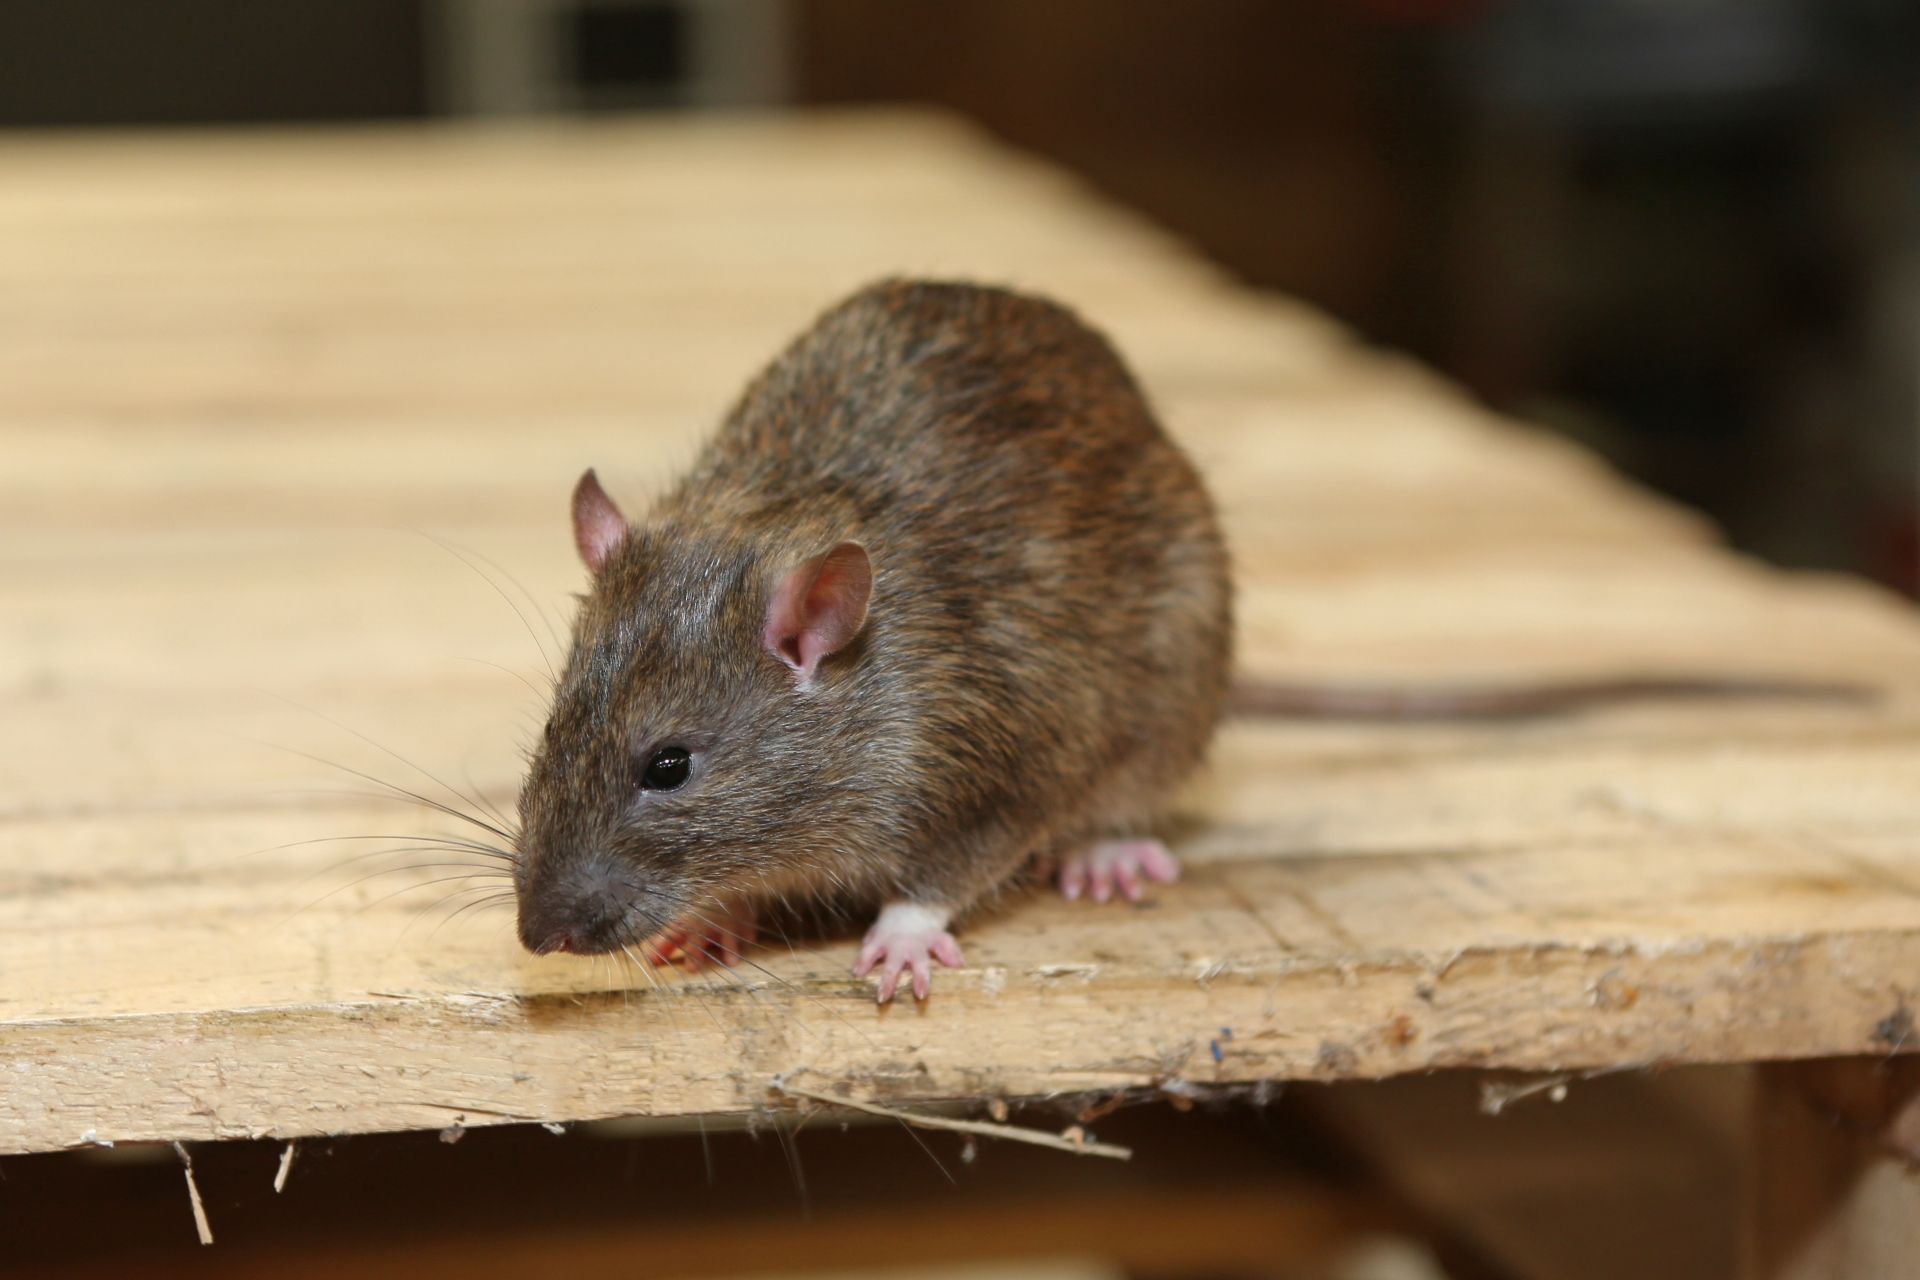 Rat extermination, Pest Control in Pimlico, SW1. Call Now 020 8166 9746